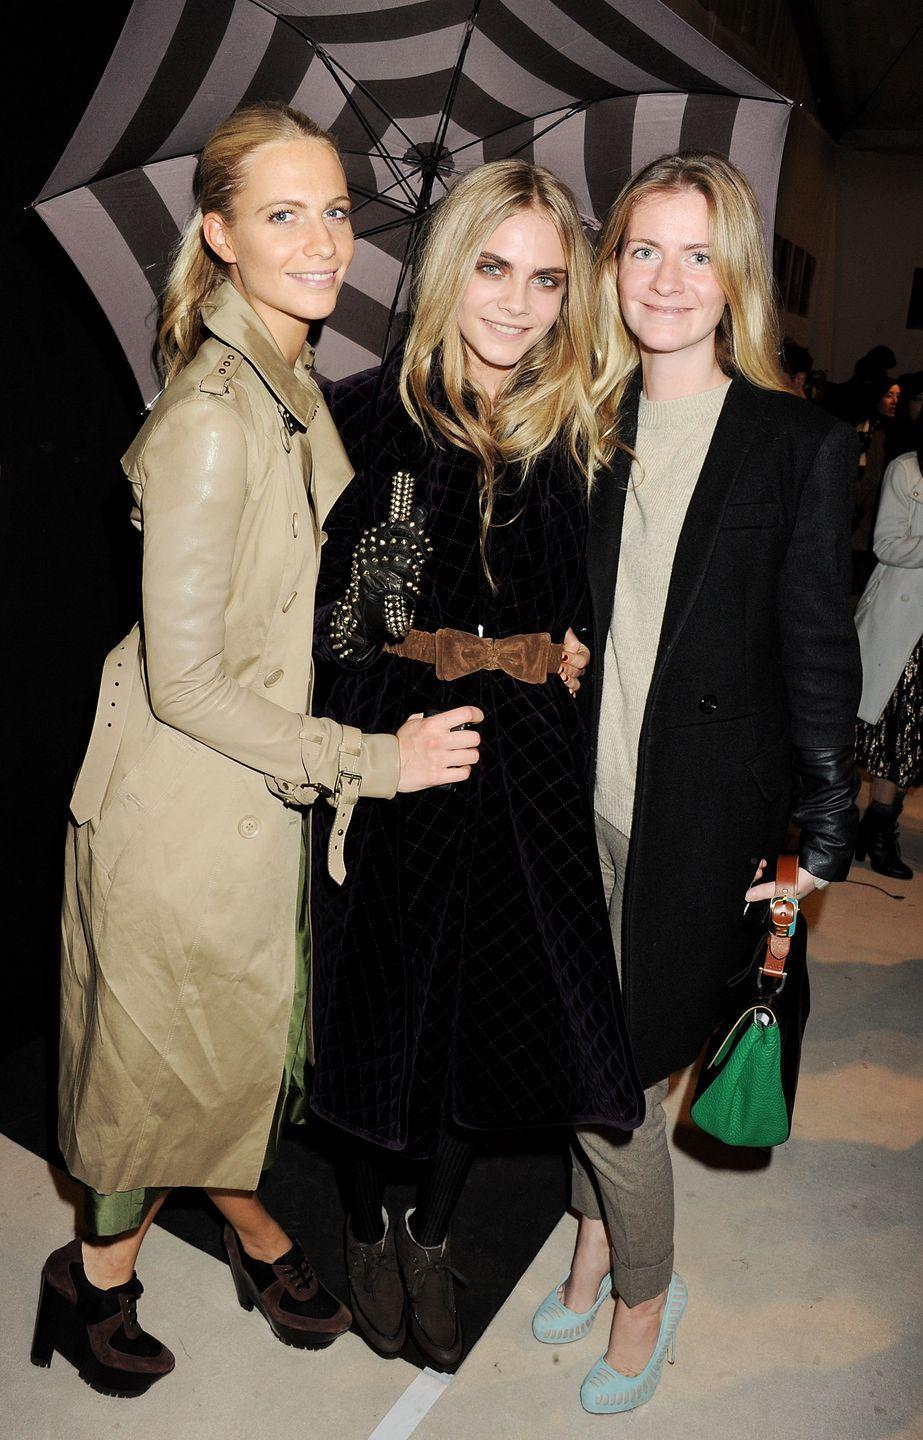 """<p>Cara and Poppy Delevingne are both in the spotlight, and the oldest of the siblings, Chloe, is a well-known socialite in London. She also just joined her sisters as a business partner for their vegan prosecco, <a href=""""https://dellavite.com/"""" rel=""""nofollow noopener"""" target=""""_blank"""" data-ylk=""""slk:Della Vite"""" class=""""link rapid-noclick-resp"""">Della Vite</a>. </p>"""